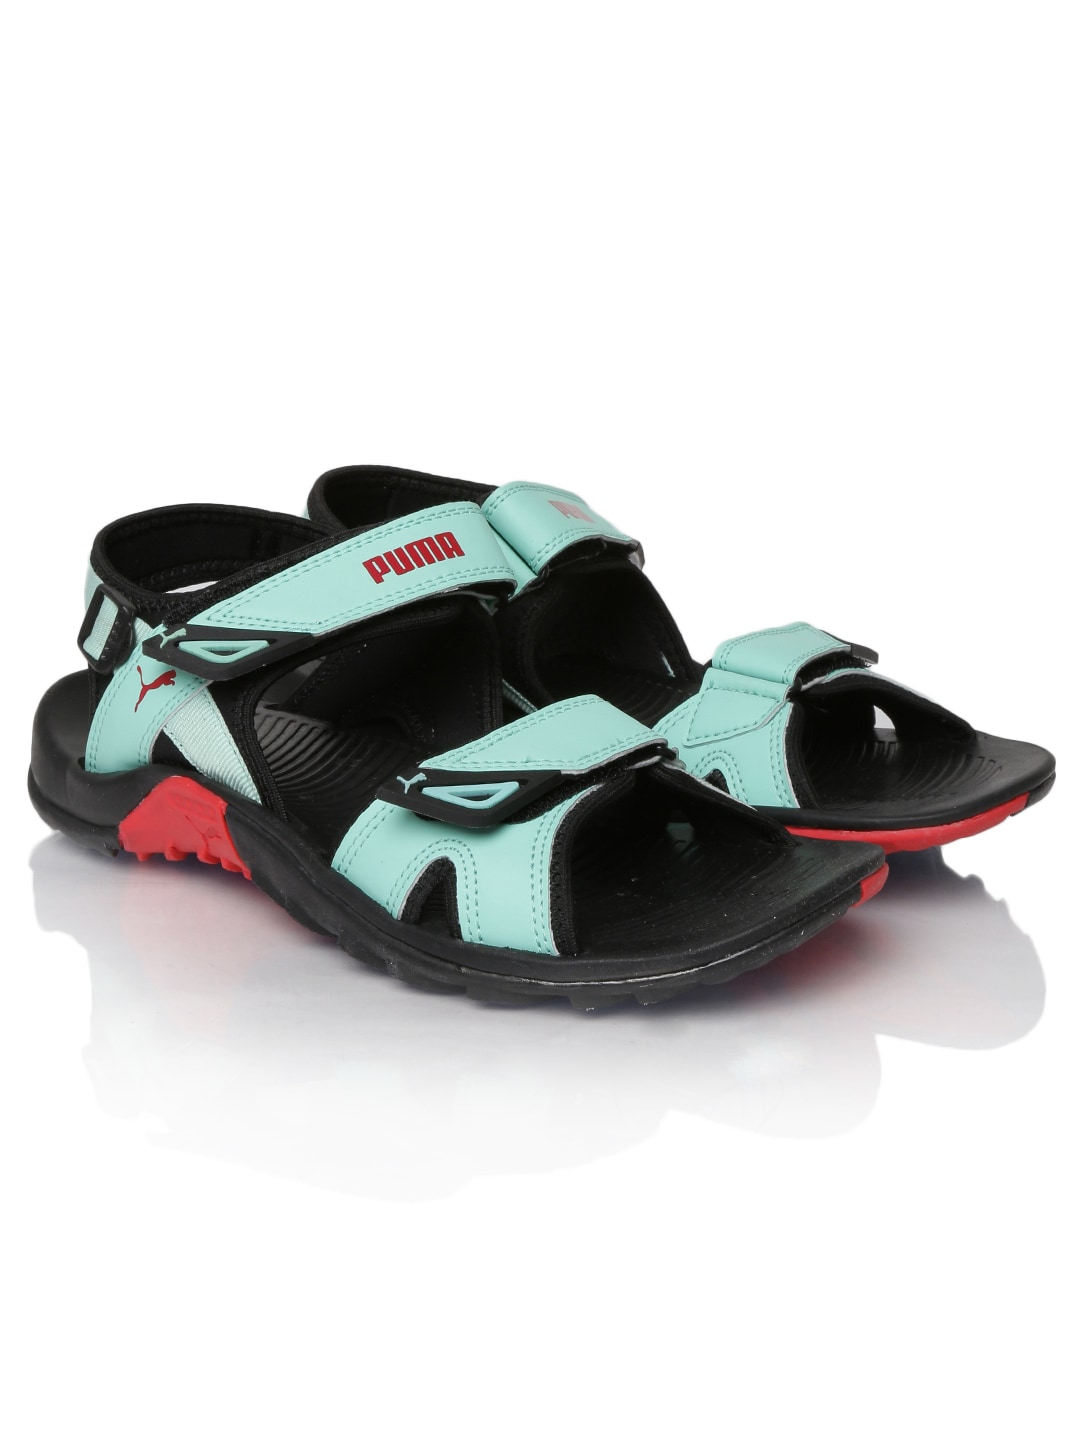 a2143aebfaf3 Puma Floaters - Buy Puma Floaters Online in India